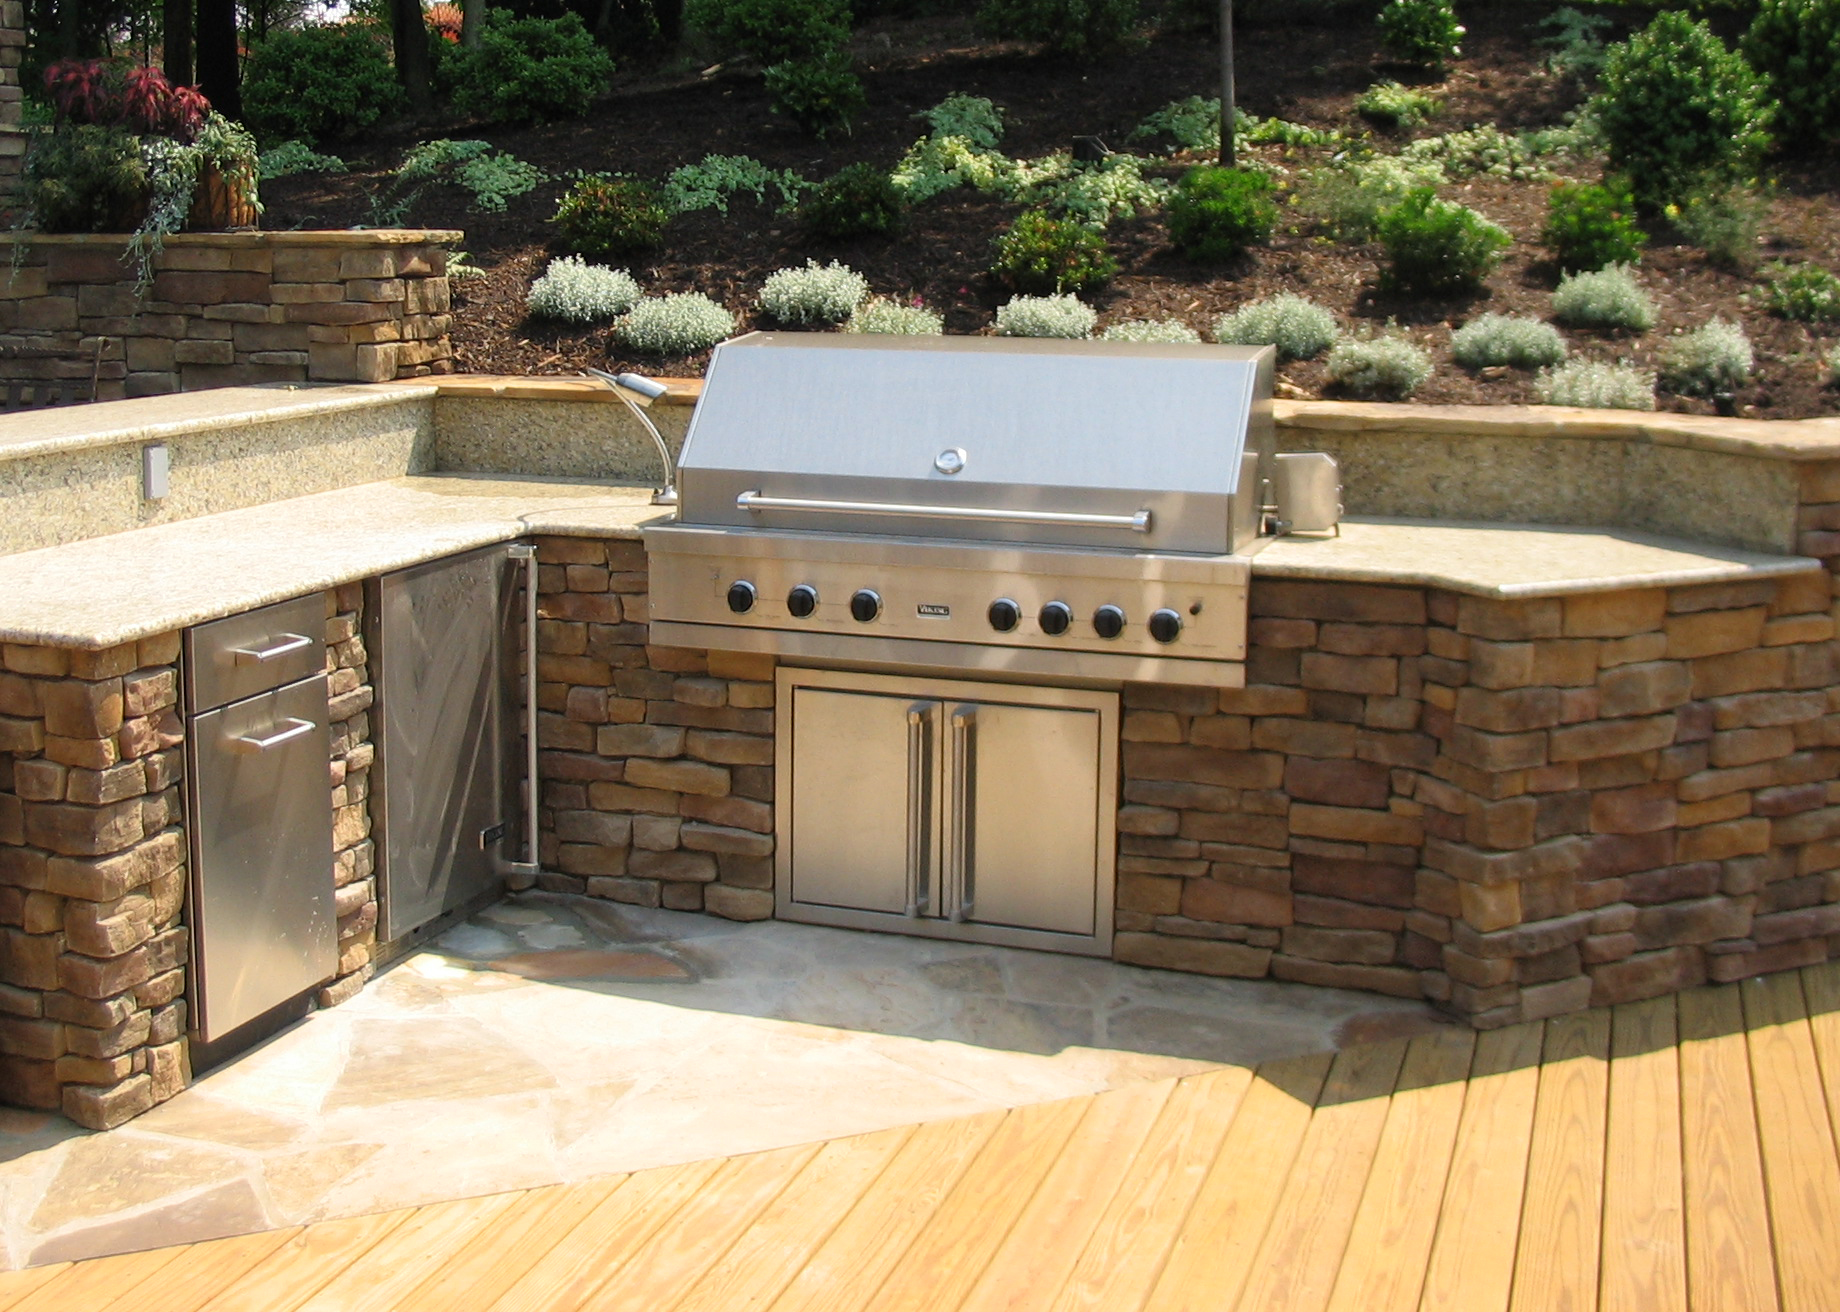 Designing an outdoor kitchen revolutionary gardens for Outdoor kitchen designs